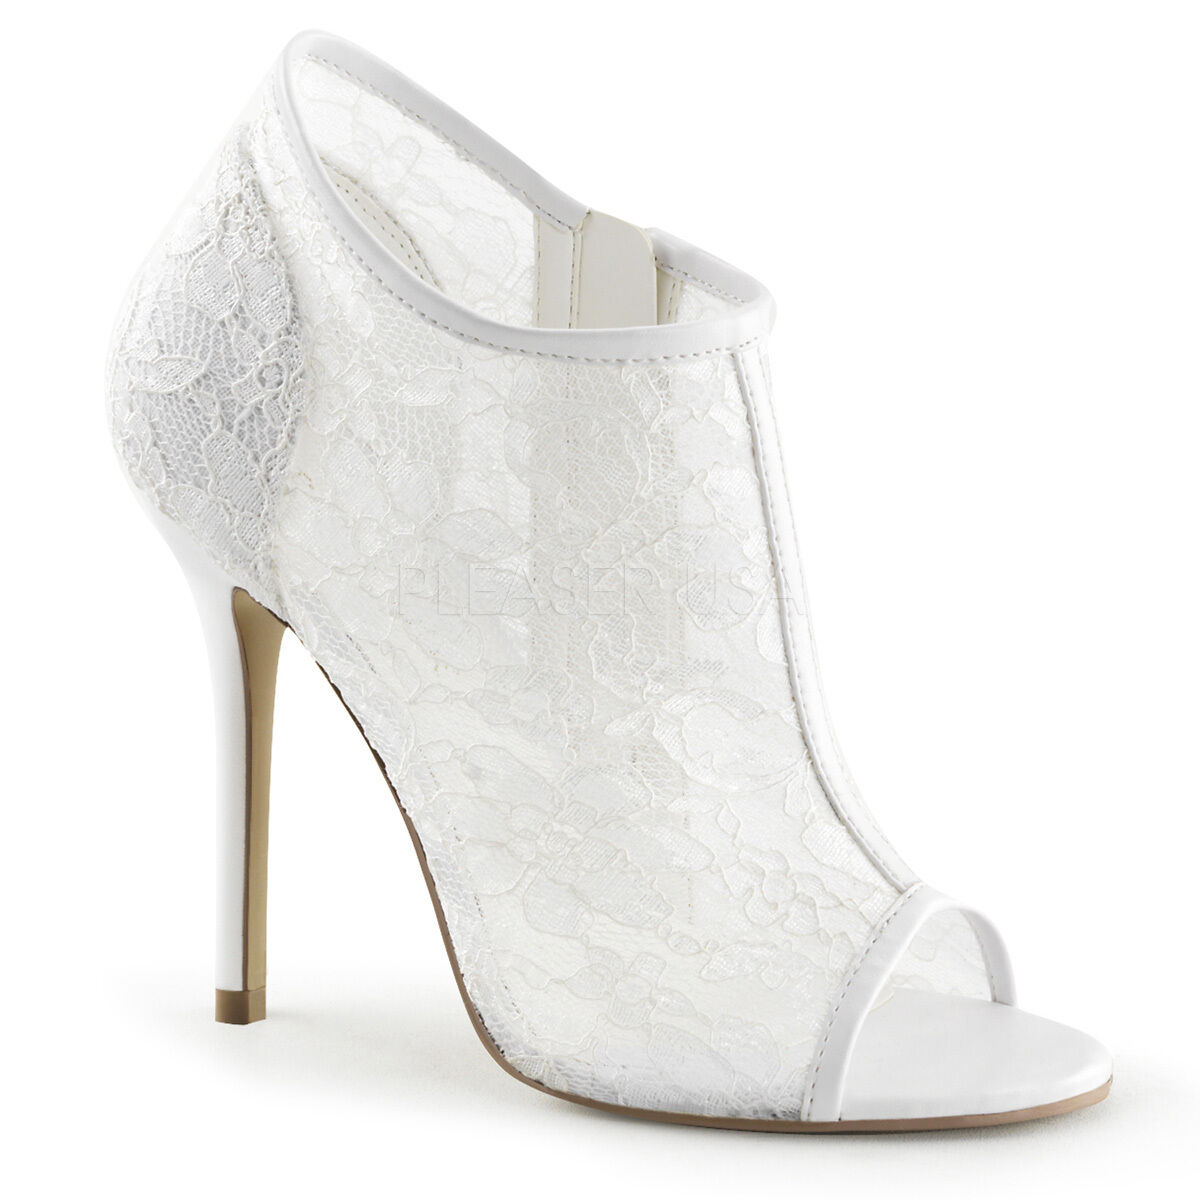 PLEASER Sexy Schuhes Ivory Lace Mesh 5